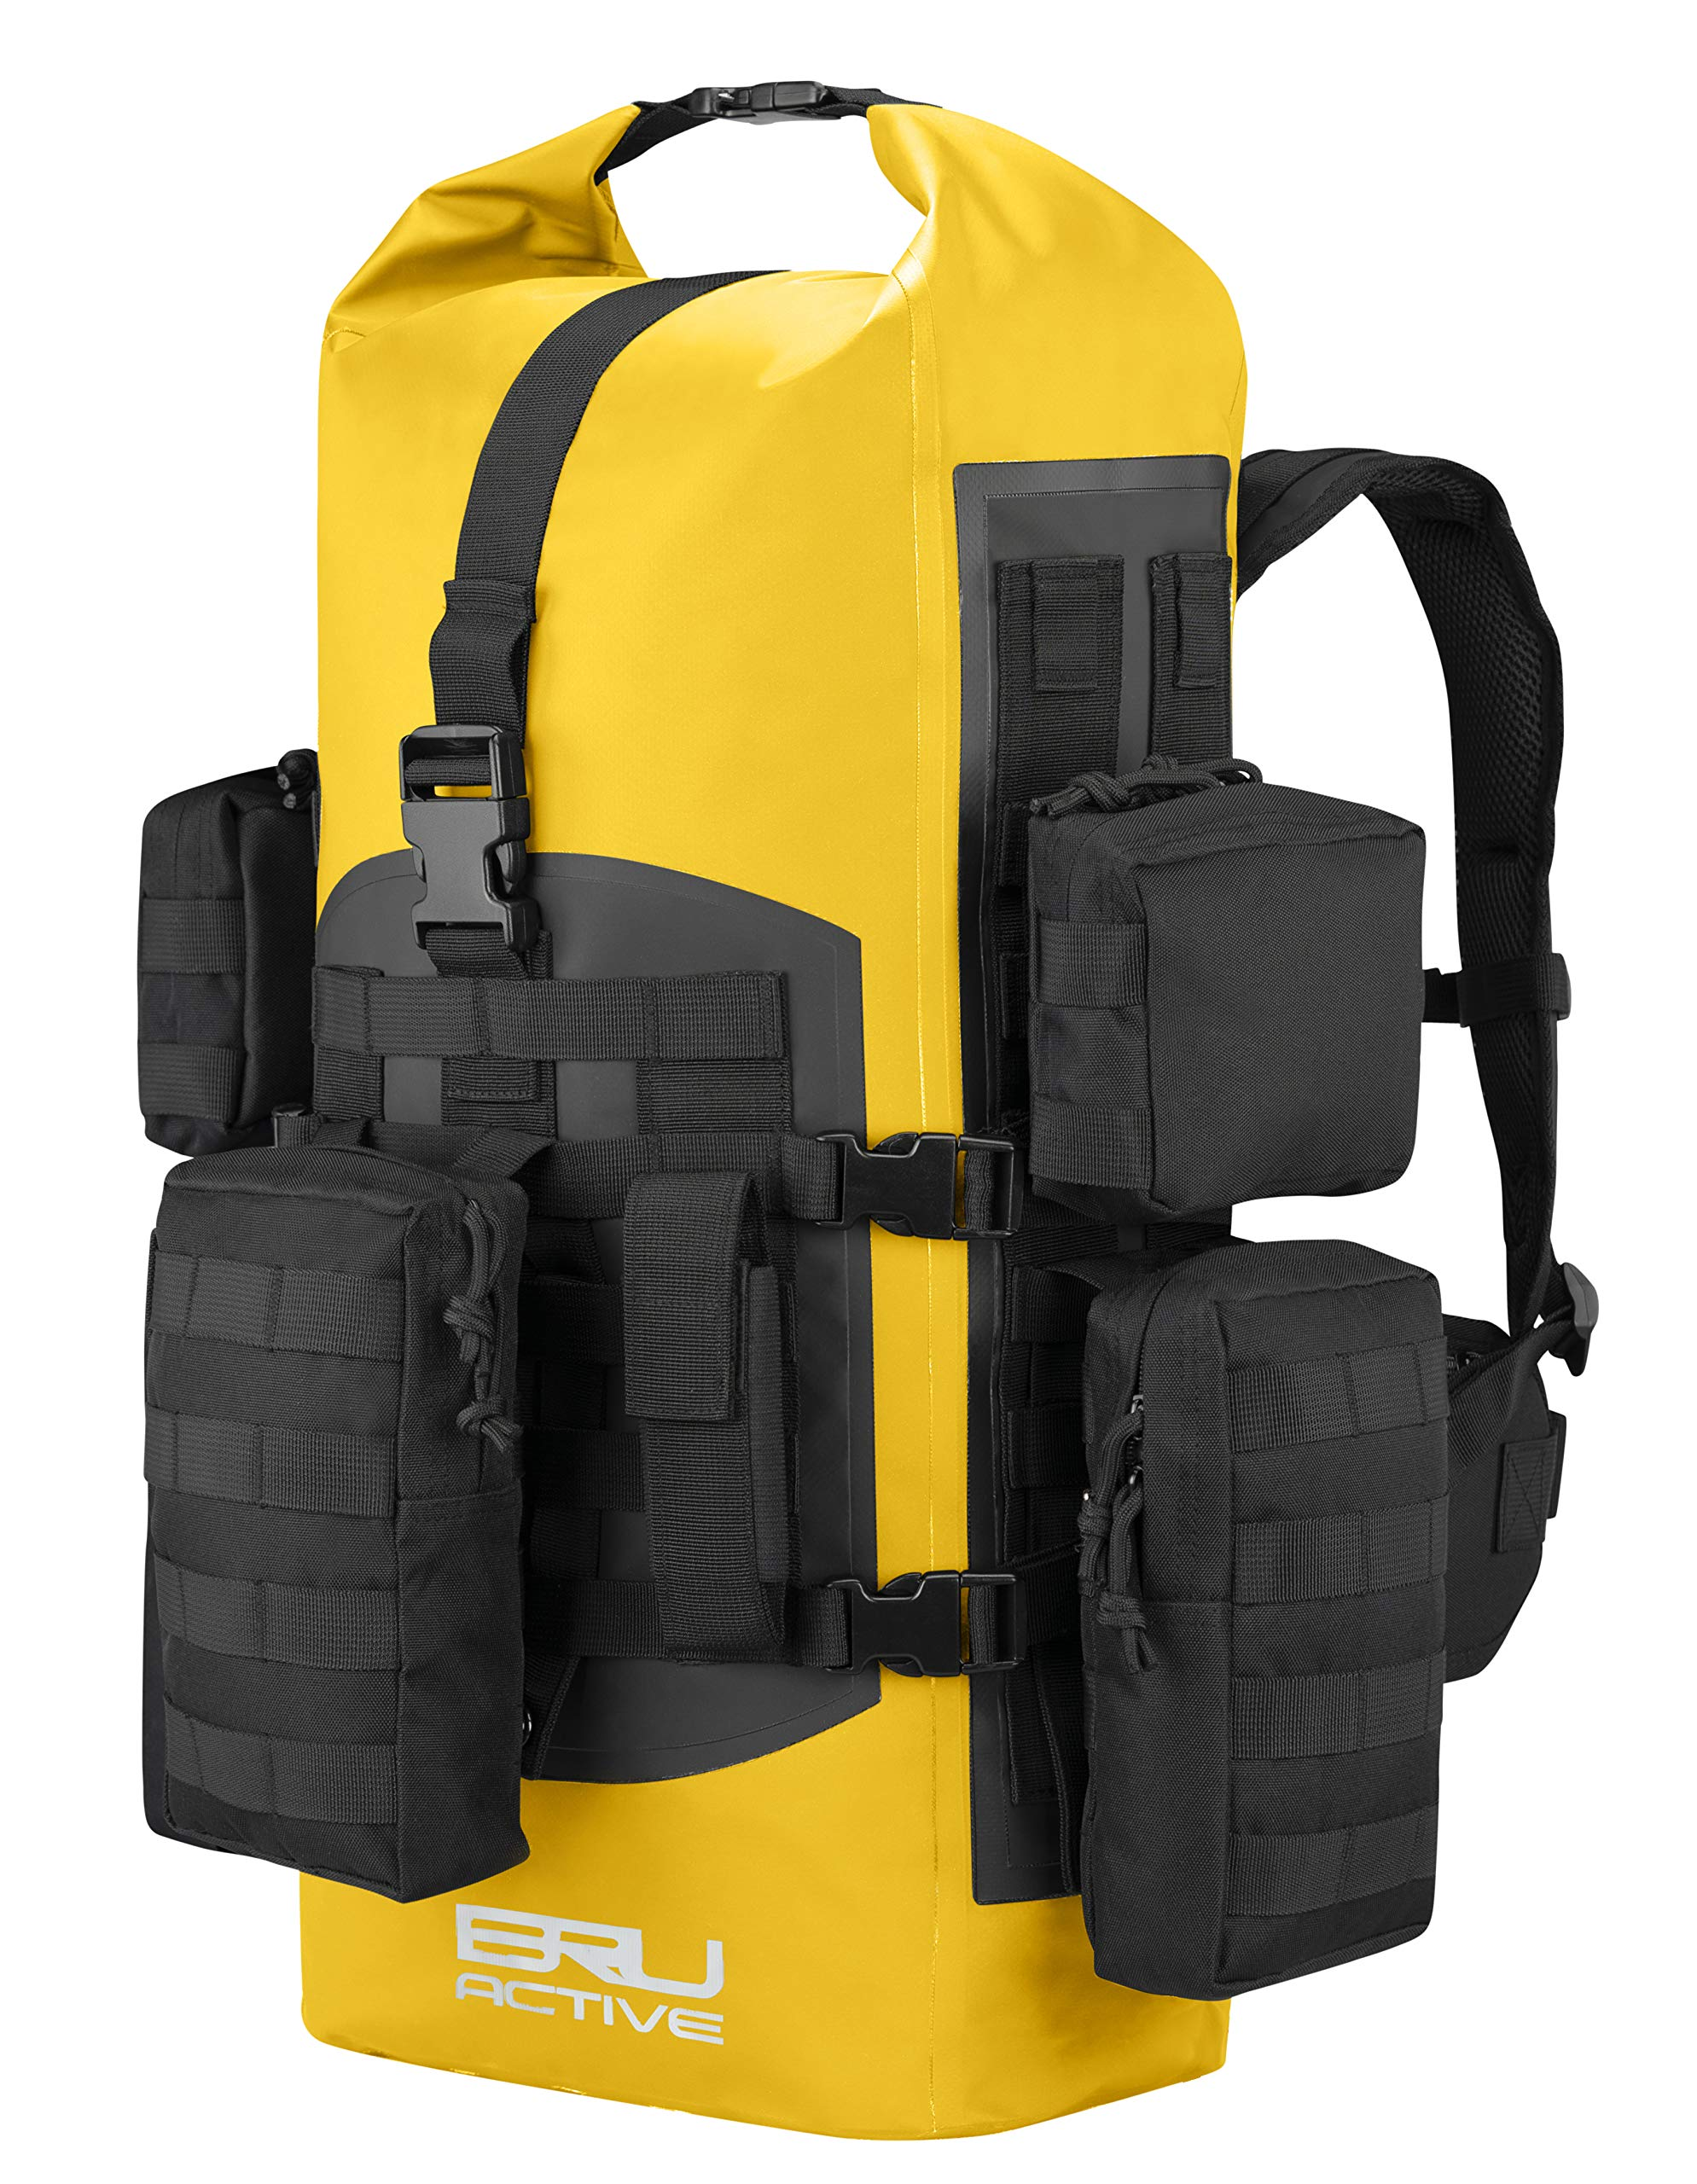 BRU Active Premium Dry Bag PVC Waterproof Backpack - Black 40L Sizes Zippers, Drawstring, Heavy Duty Adjustable Straps Kayaking, Boating, Hiking, Water Sports, Fishing ... (Yellow) by BRU Active